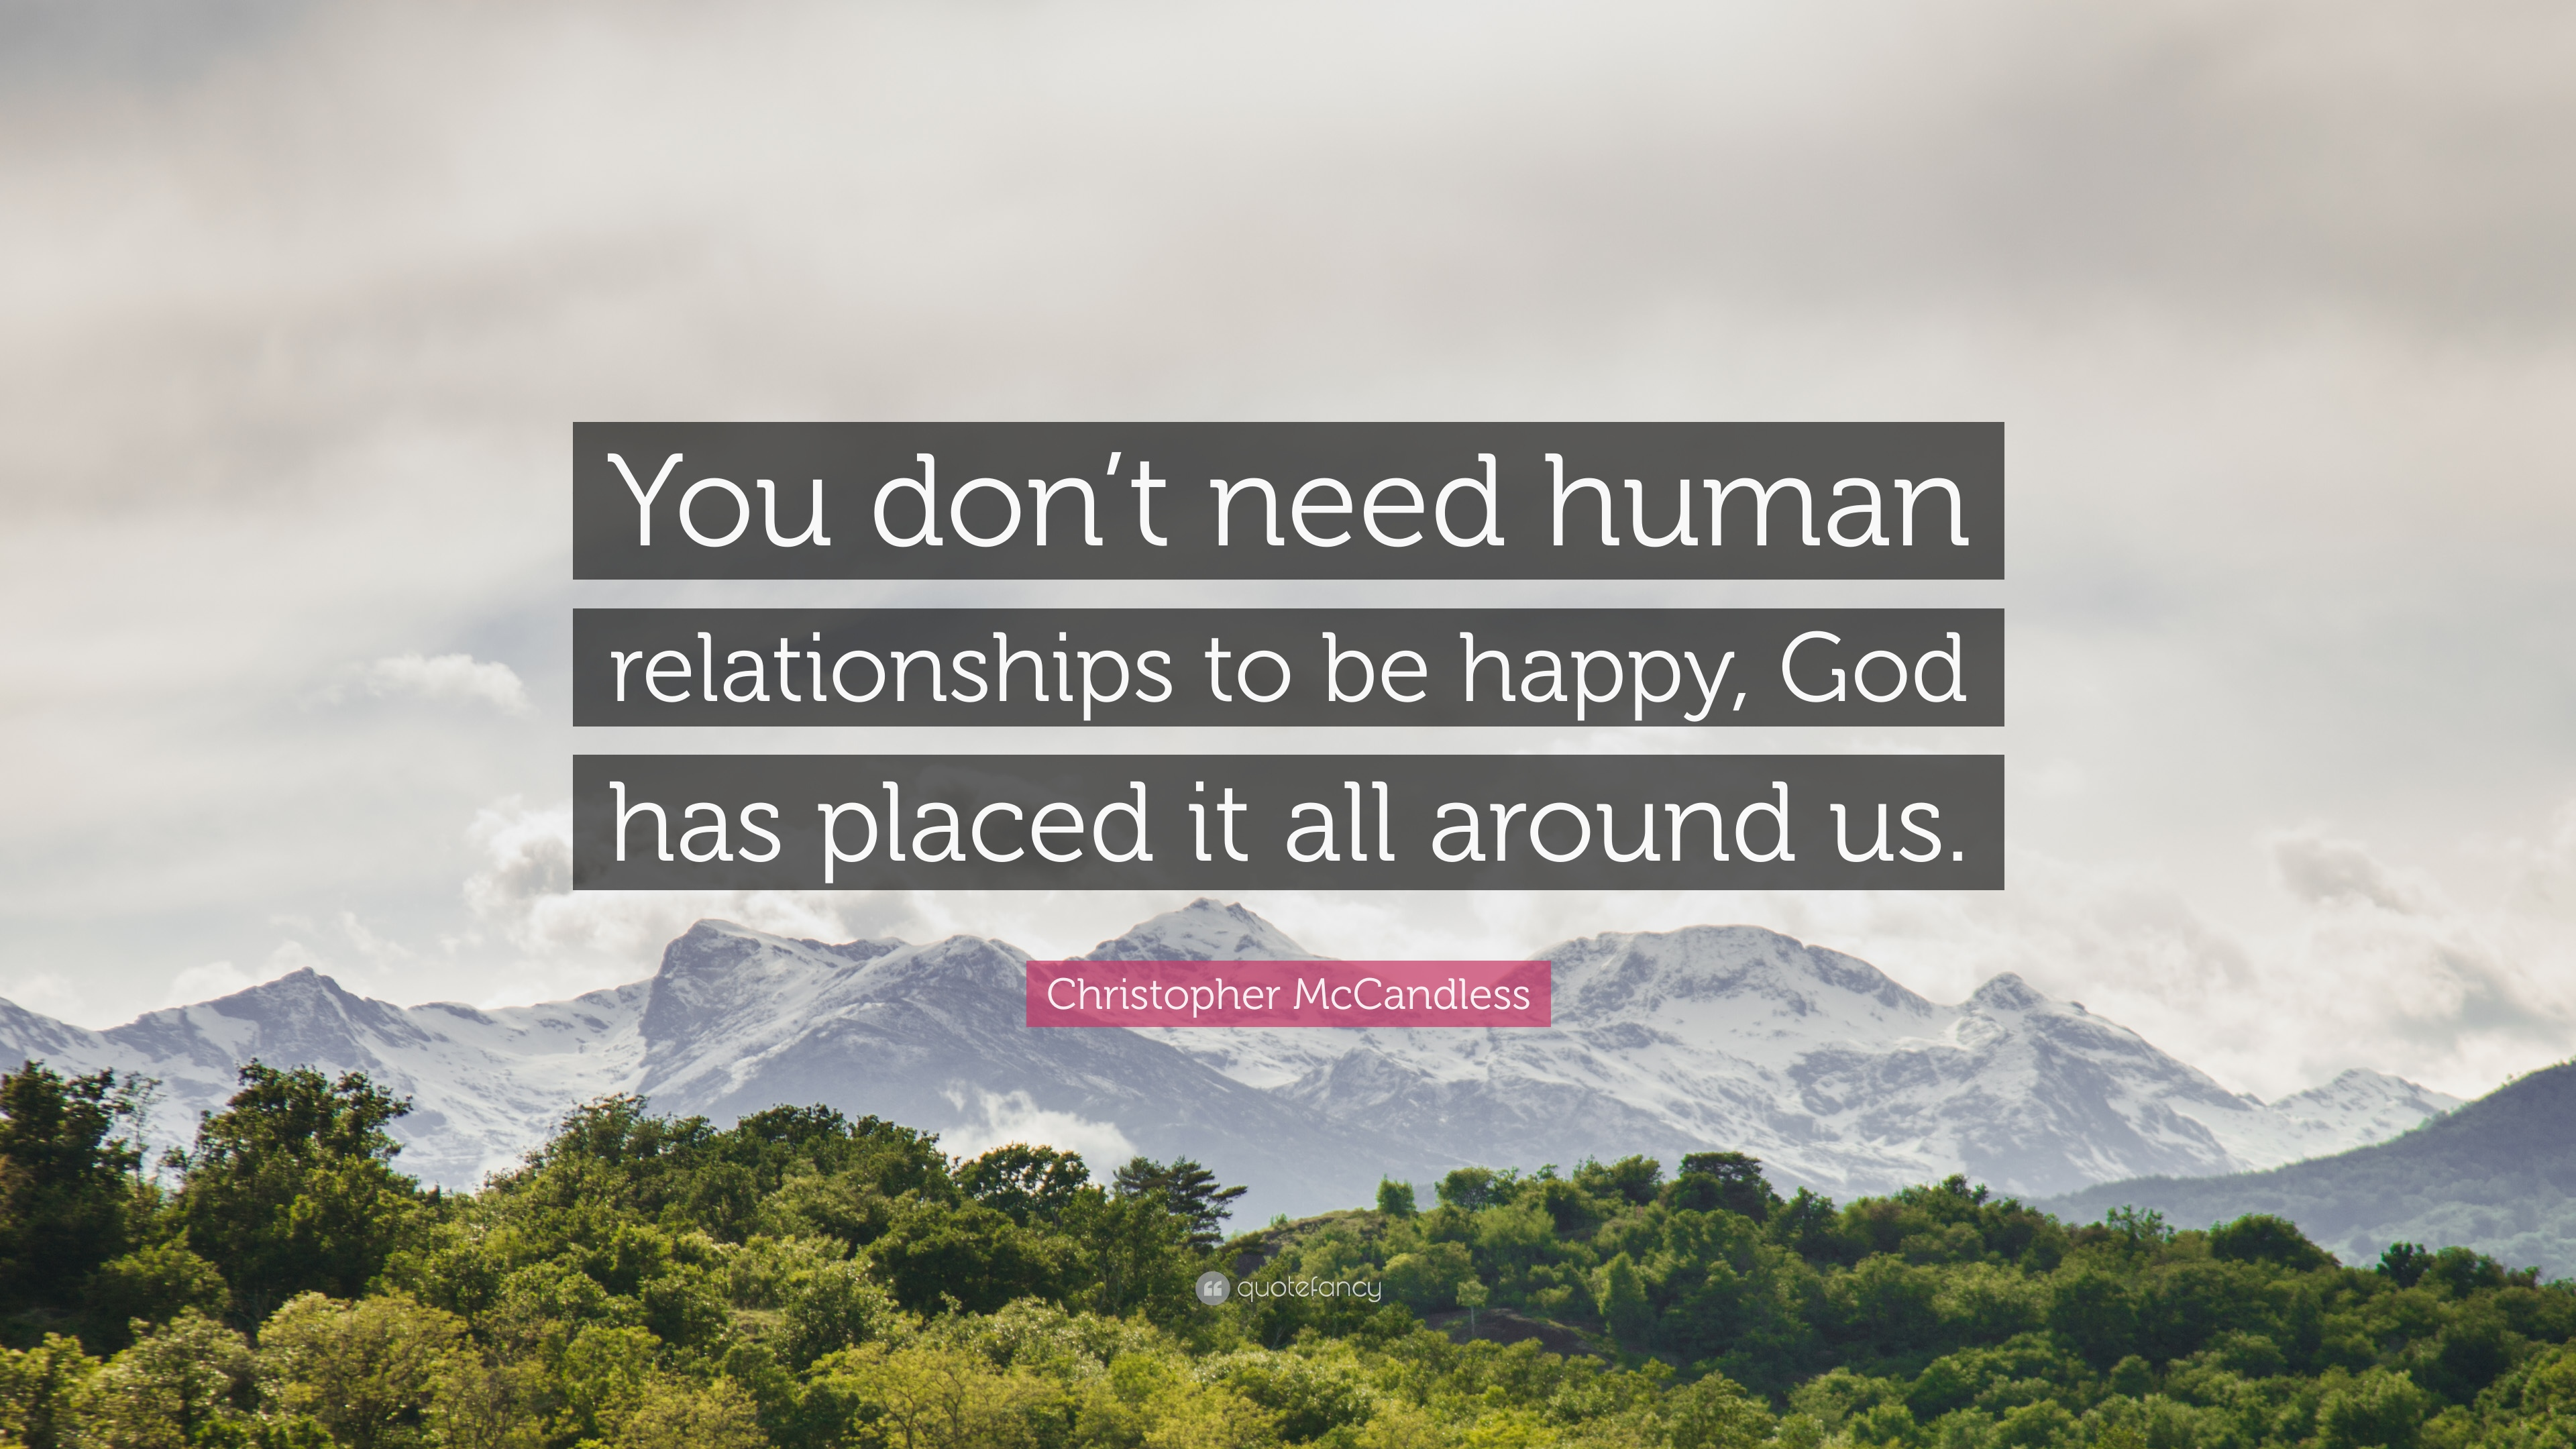 Christopher Mccandless Quote You Dont Need Human Relationships To